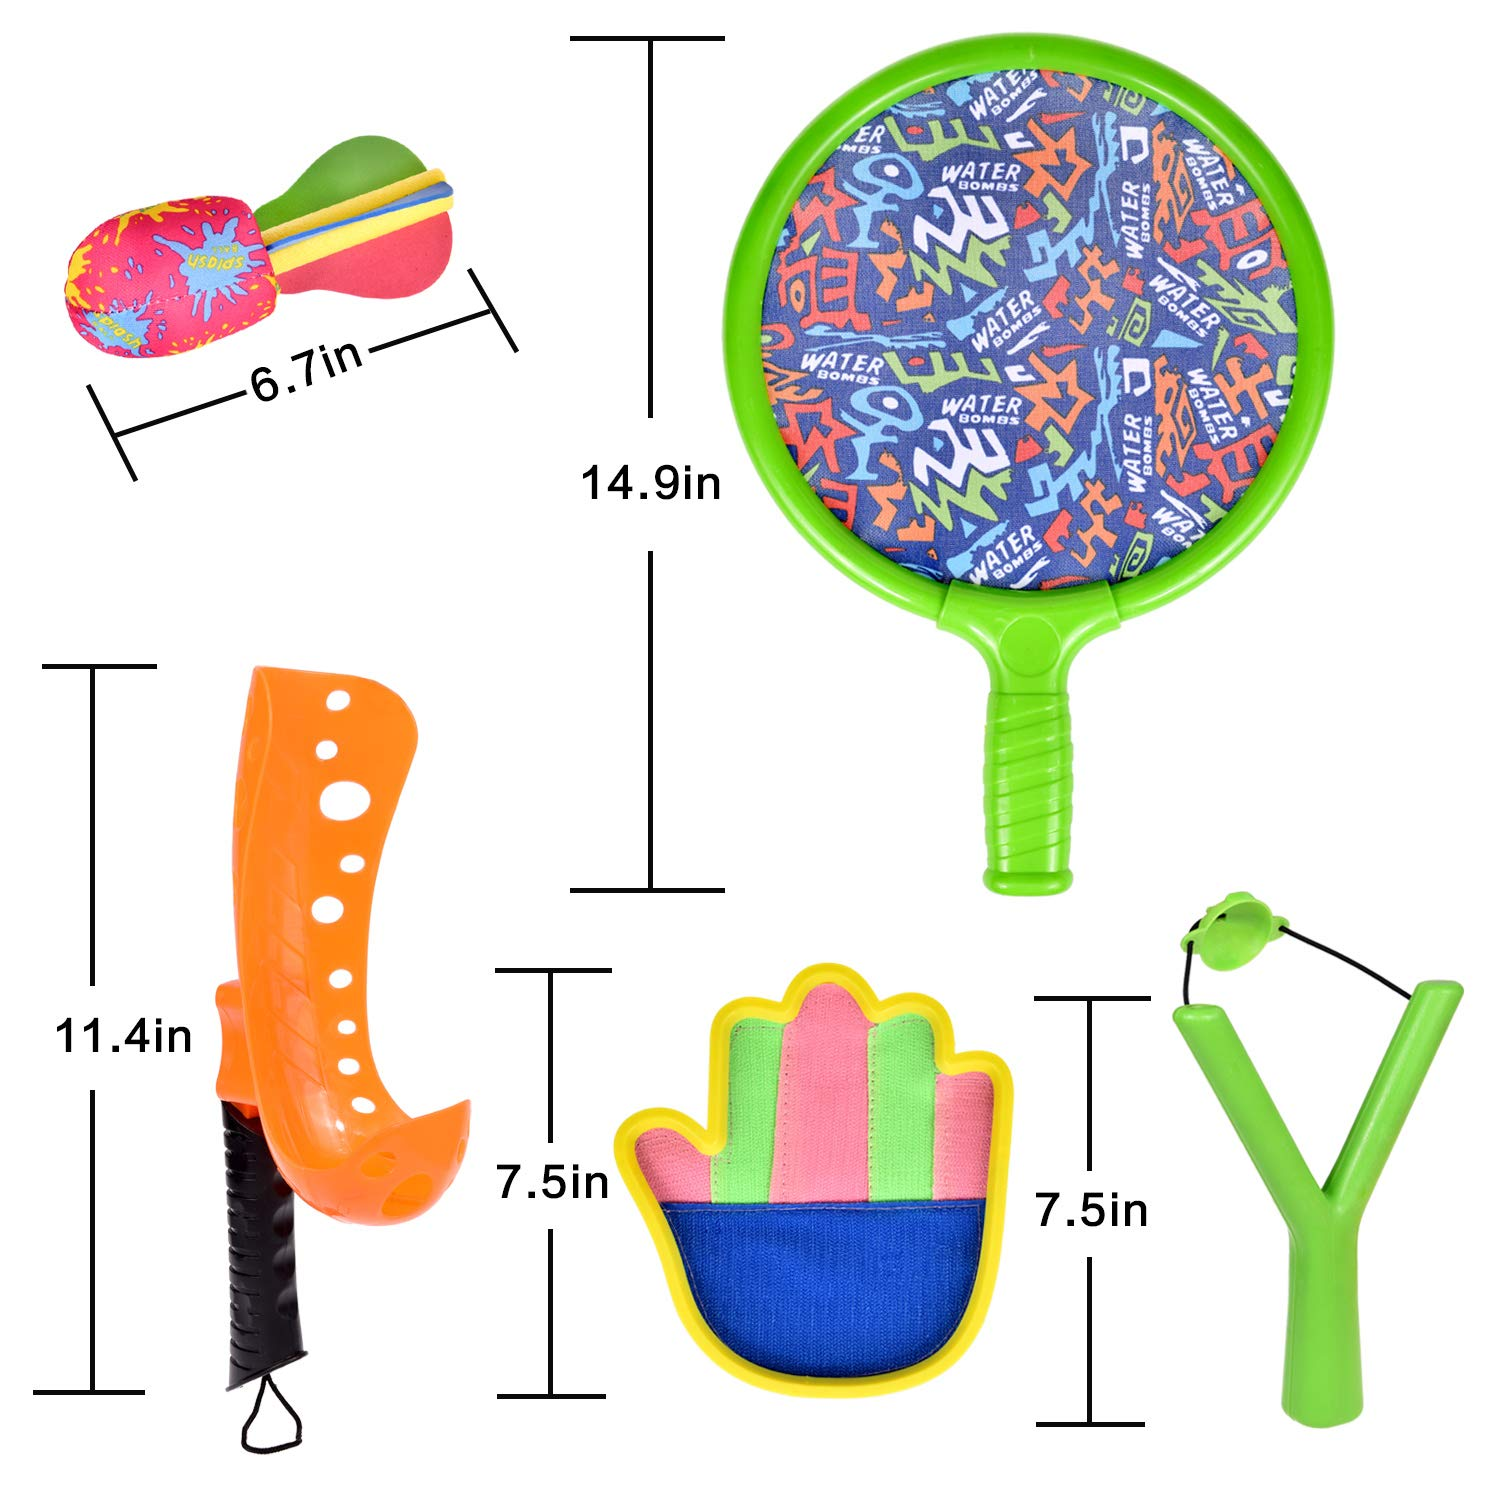 16 PCs Sports Outdoor Games Set with Scoop Ball Toss, Toss and Catch Games, Tennis Racket Sports Toy, Slingshot Rocket Copters Water Toys for Kids by FUN LITTLE TOYS (Image #7)